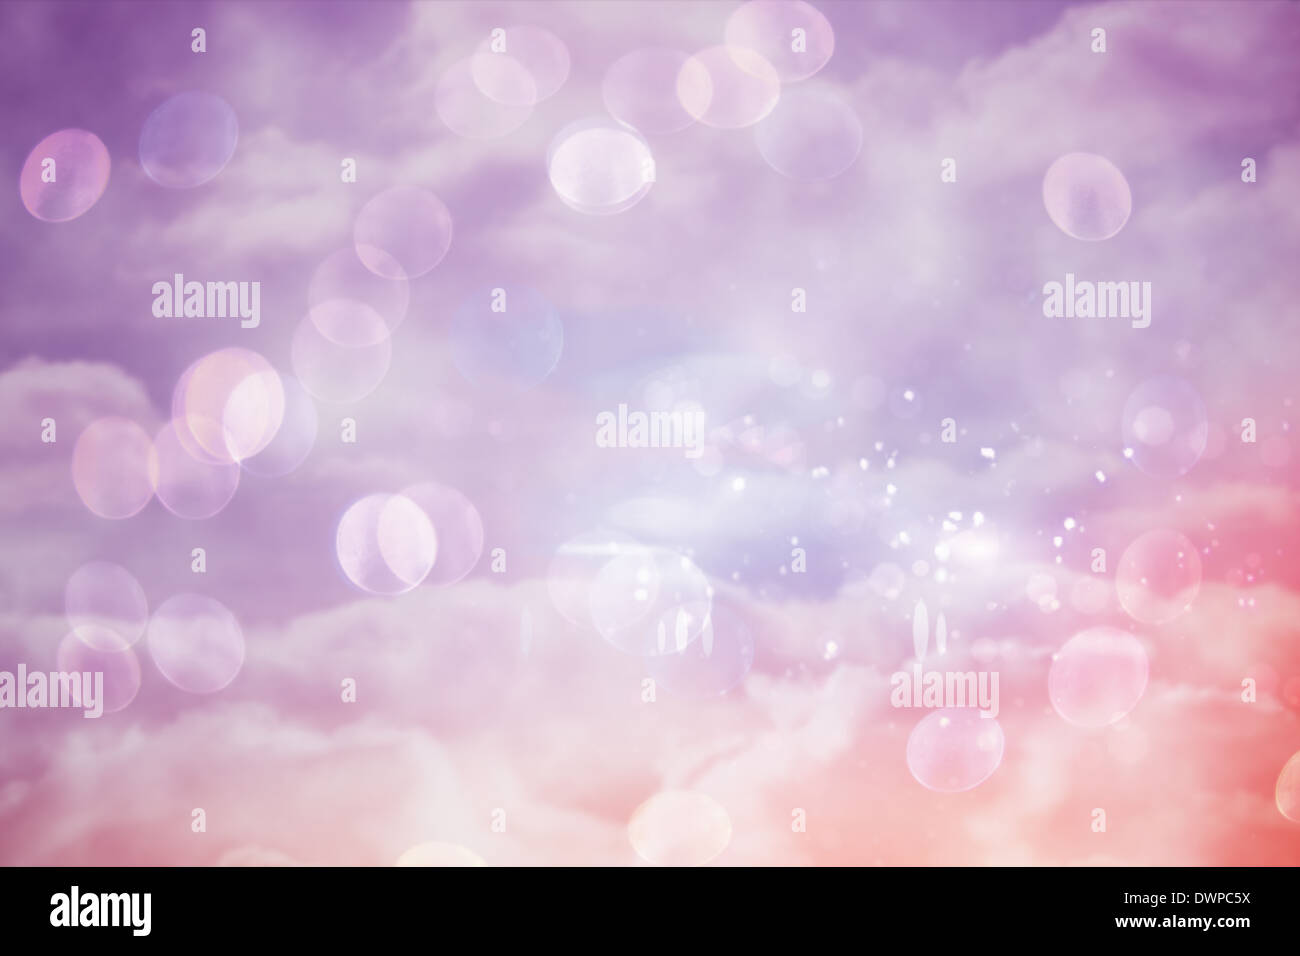 Pink and purple girly design - Stock Image